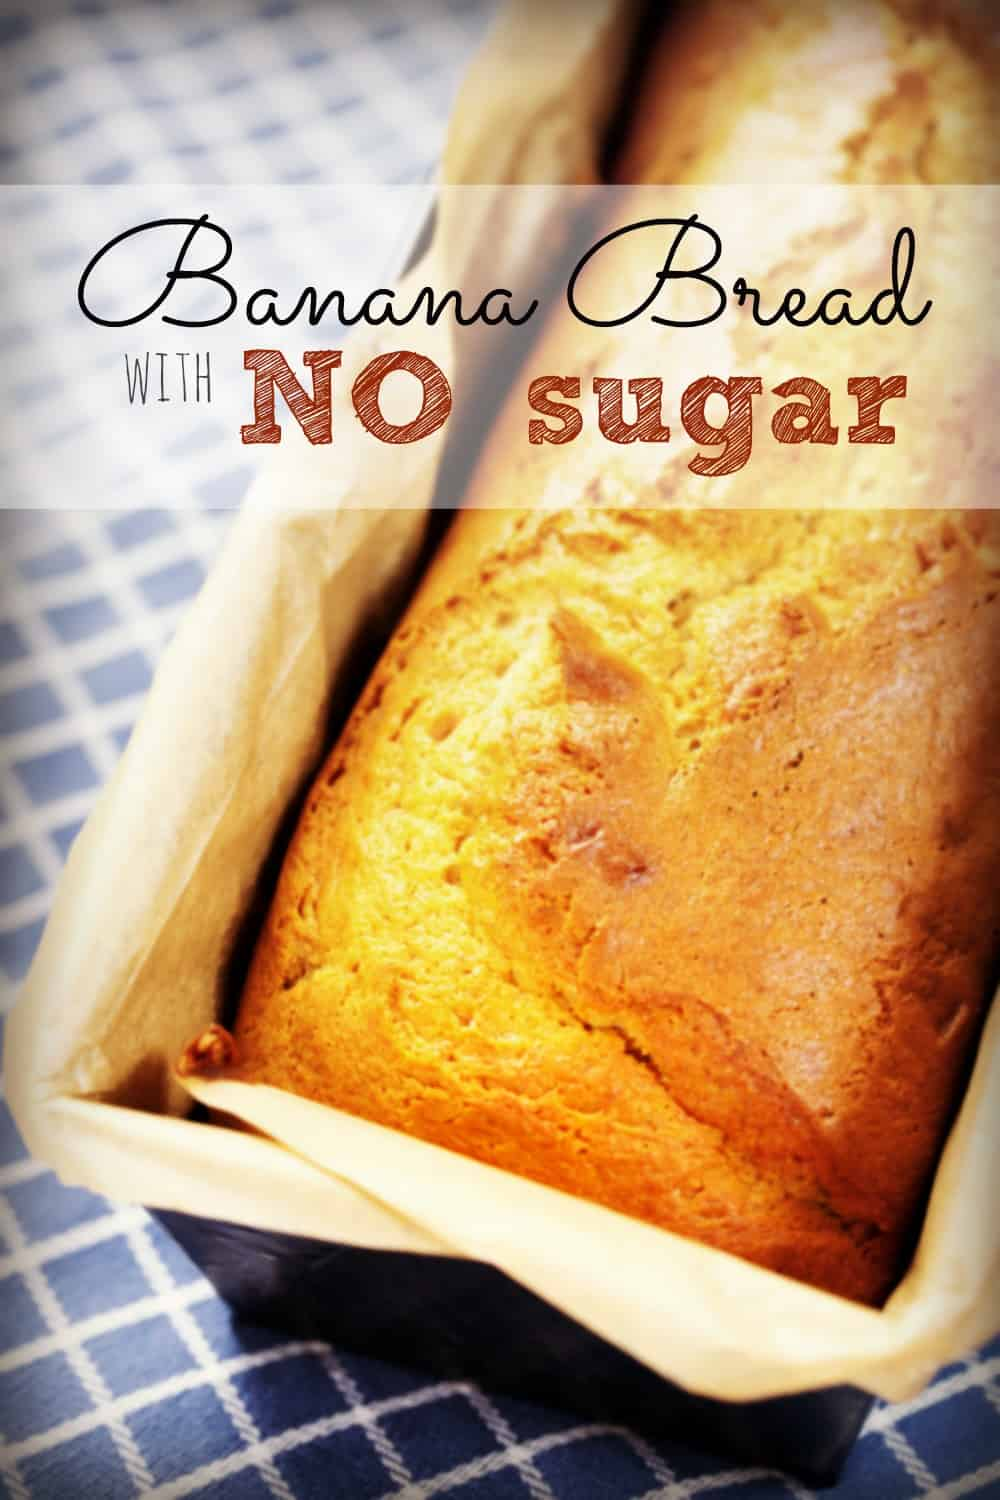 Trying to eliminate refined sugar from your family's meals? You'll love this moist, easy banana bread recipe. It freezes beautifully, too. #nosugar #bananabread